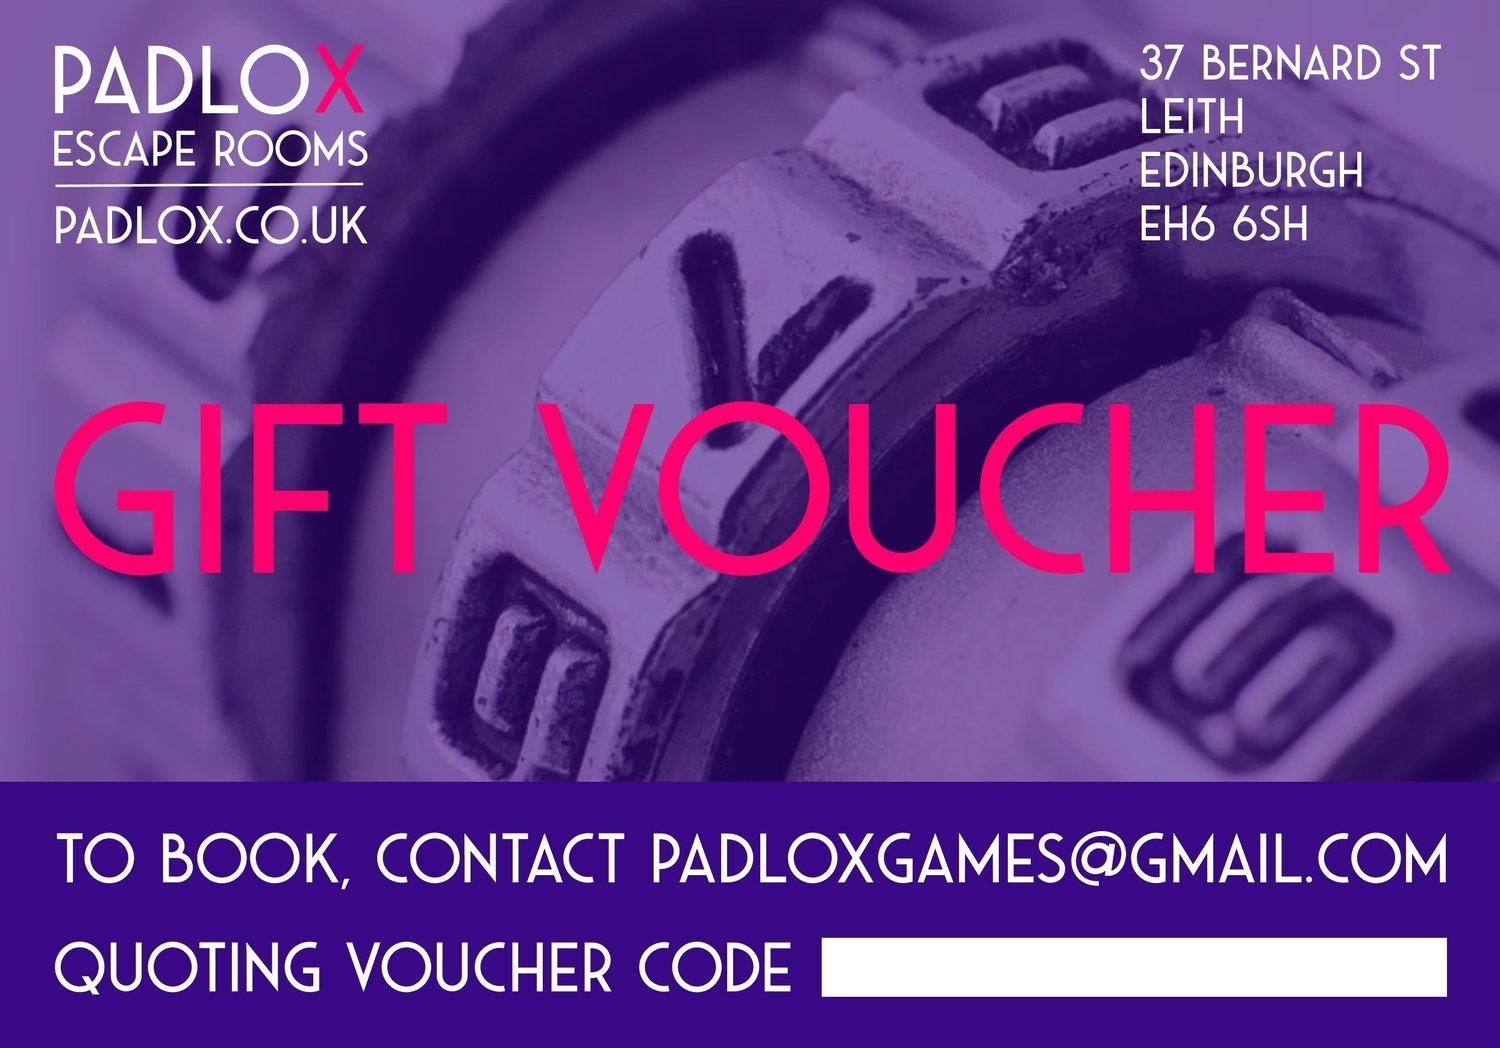 Gift Voucher (6 players)